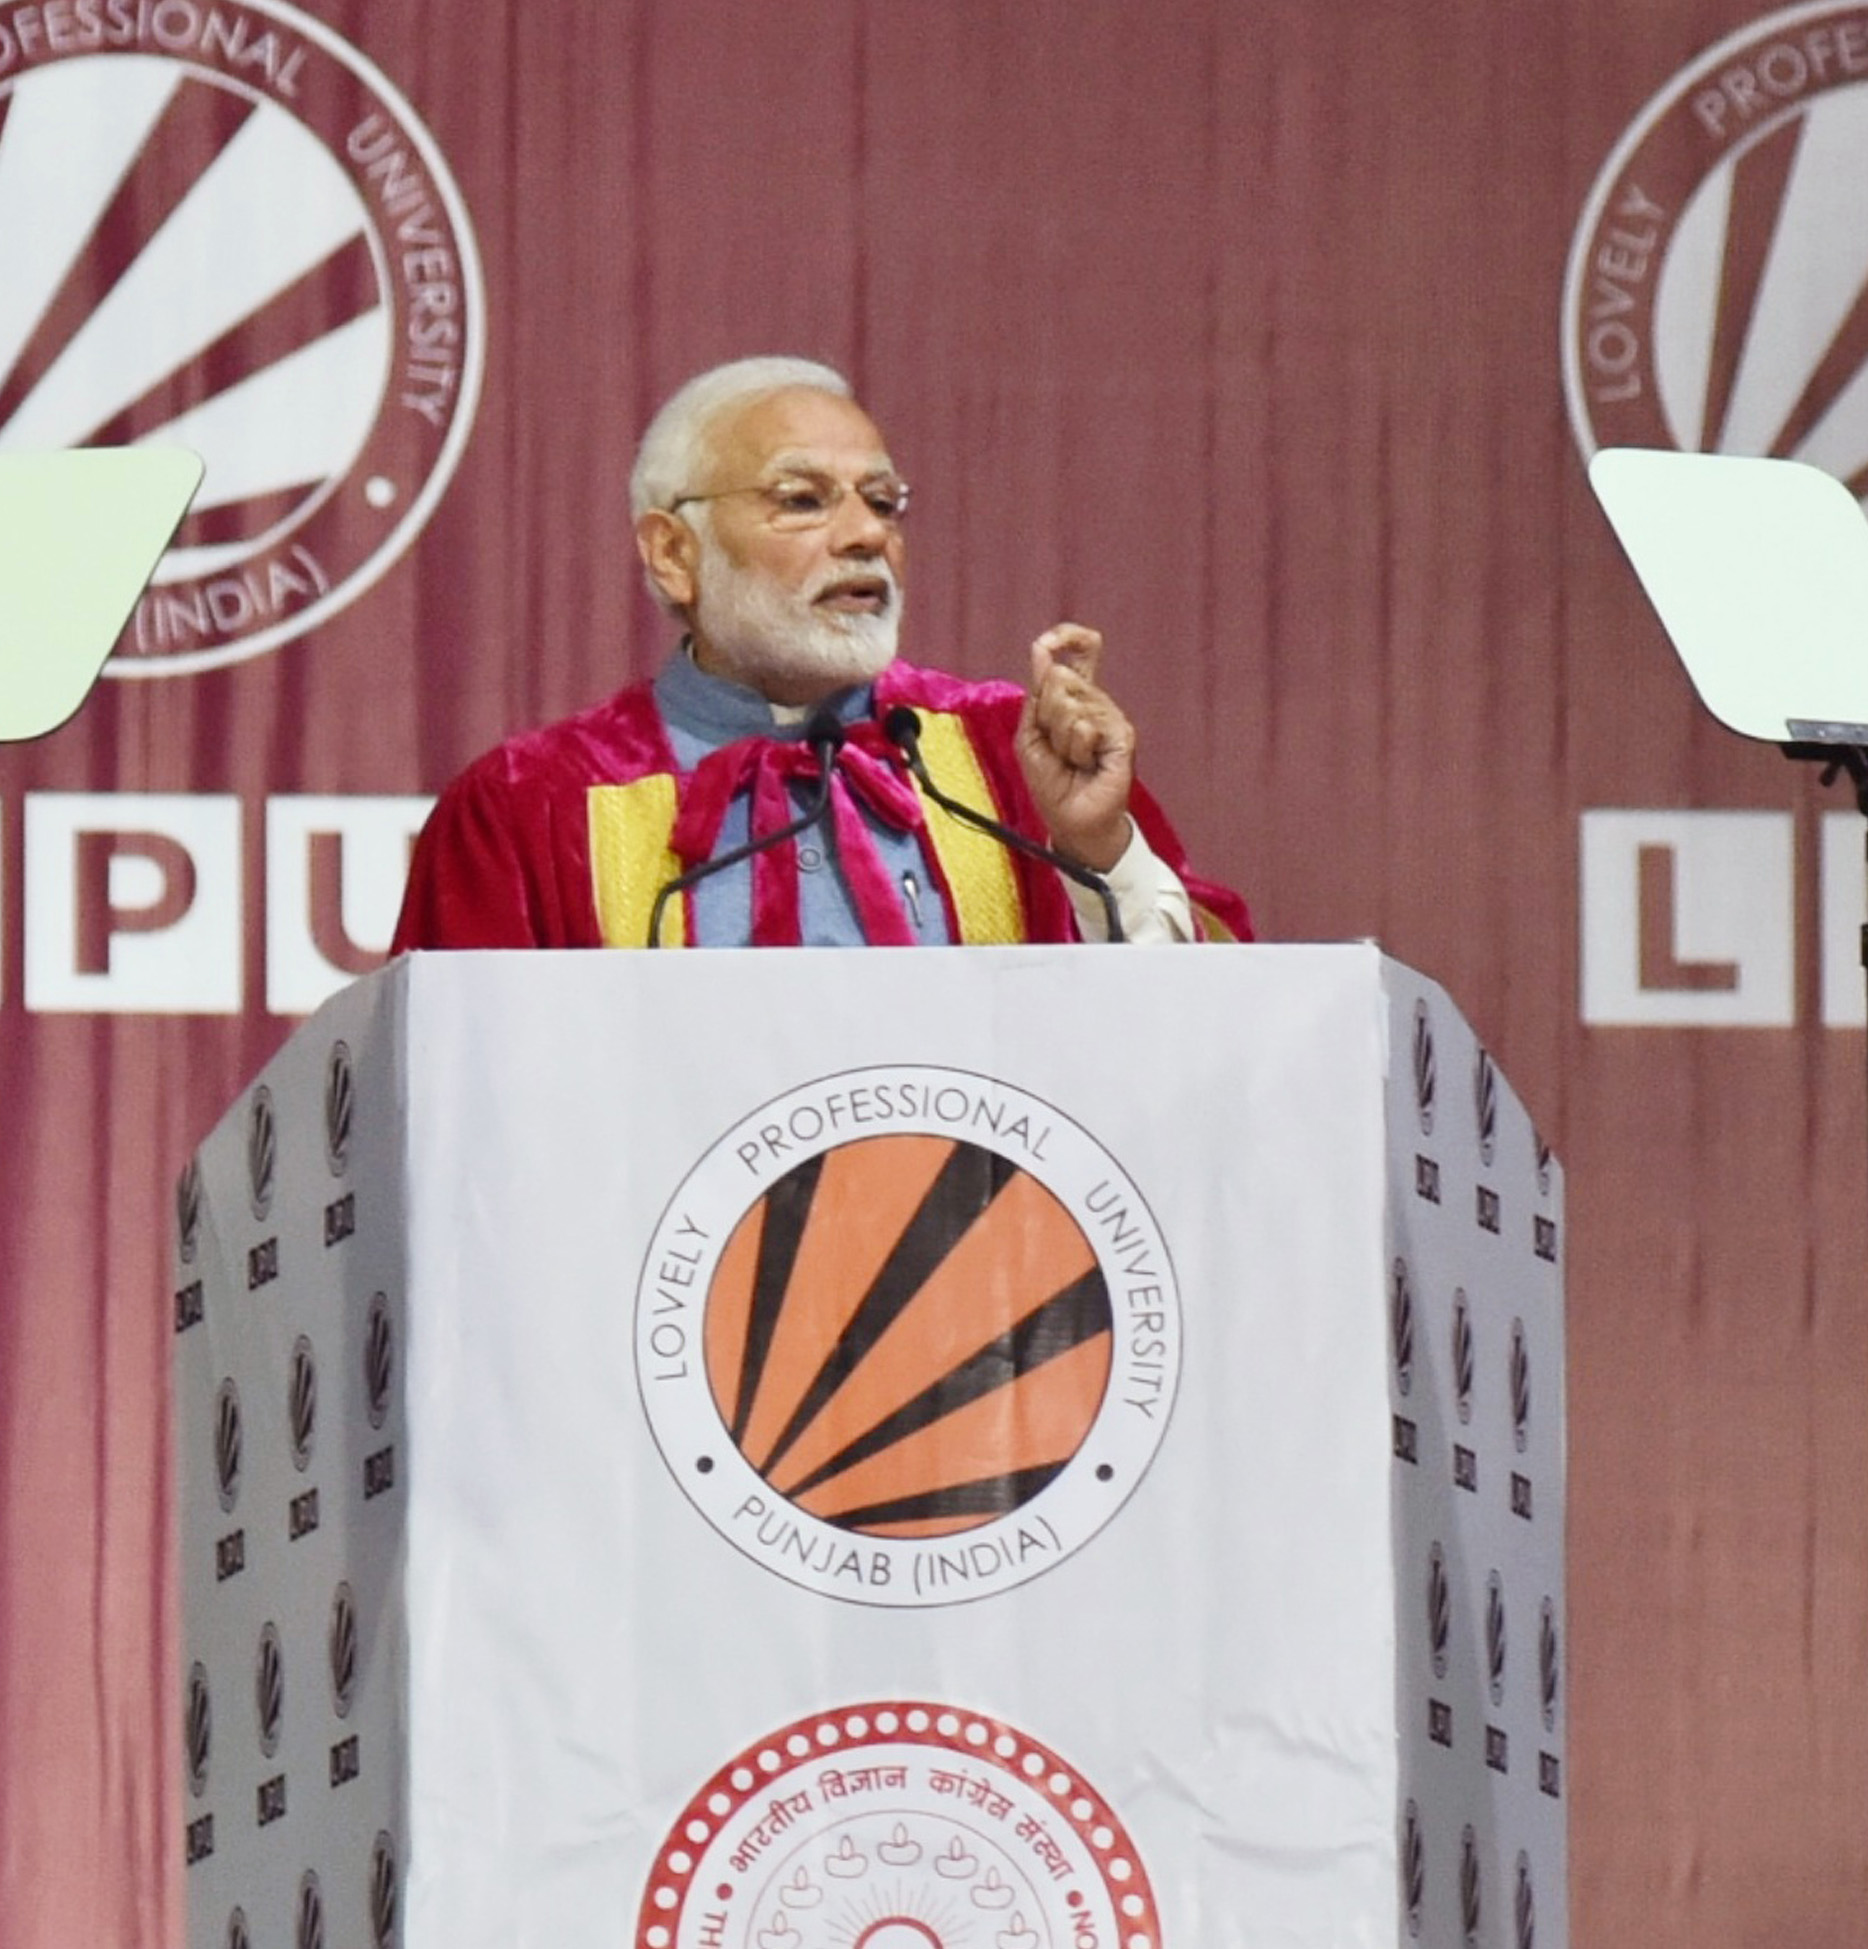 PM delivers inaugural address at 106th session of Indian Science Congress